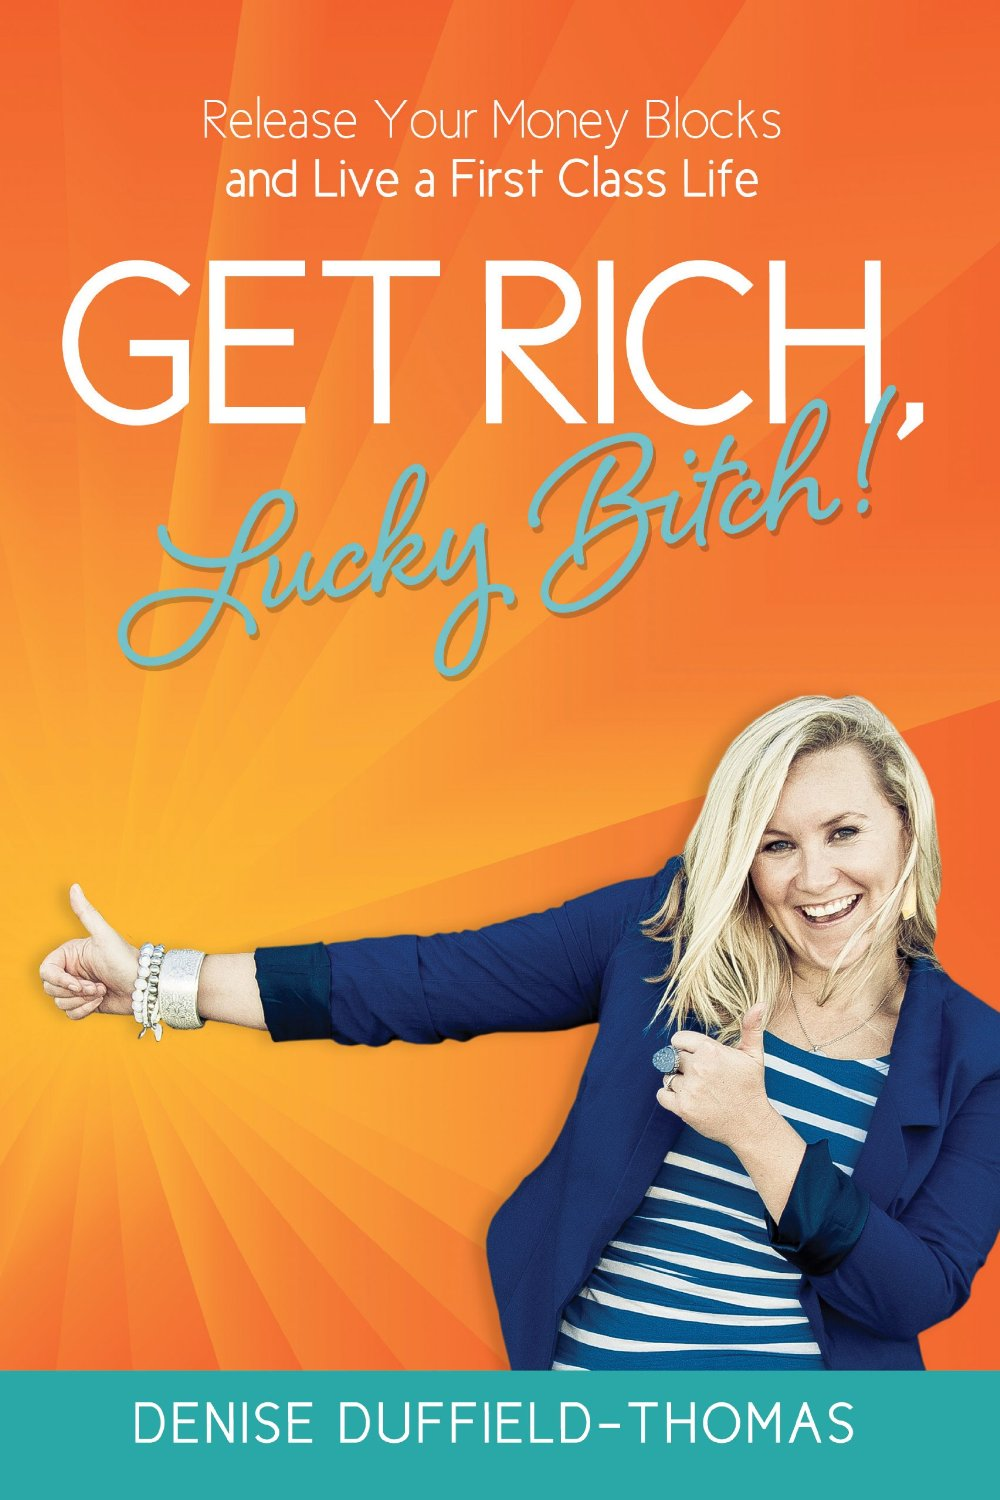 livre get rich lucky bitch denise dufflied thomas talented girls femme entrepreneure conseils business coaching positif developpement personnel entrepreneuriat feminin